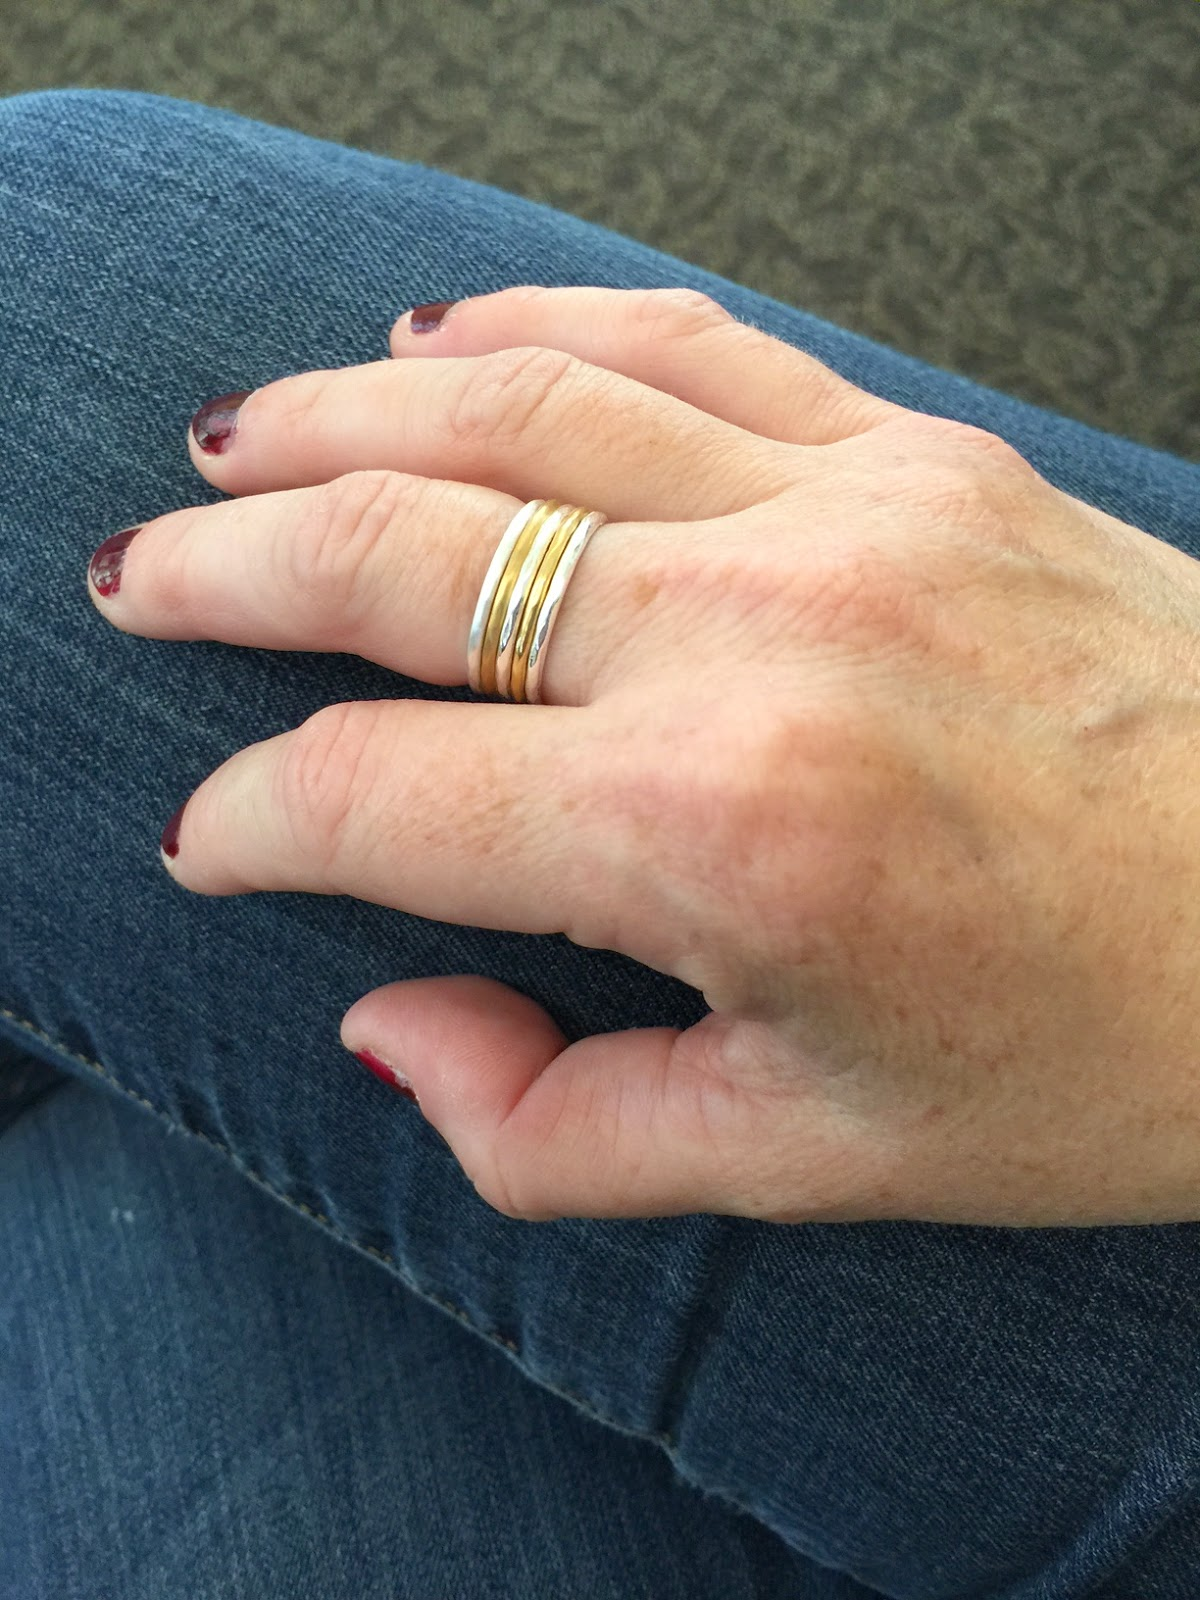 http://www.stelladot.com/shop/en_us/p/stackable-band-rings-set-of-5?s=lindseygoodwin